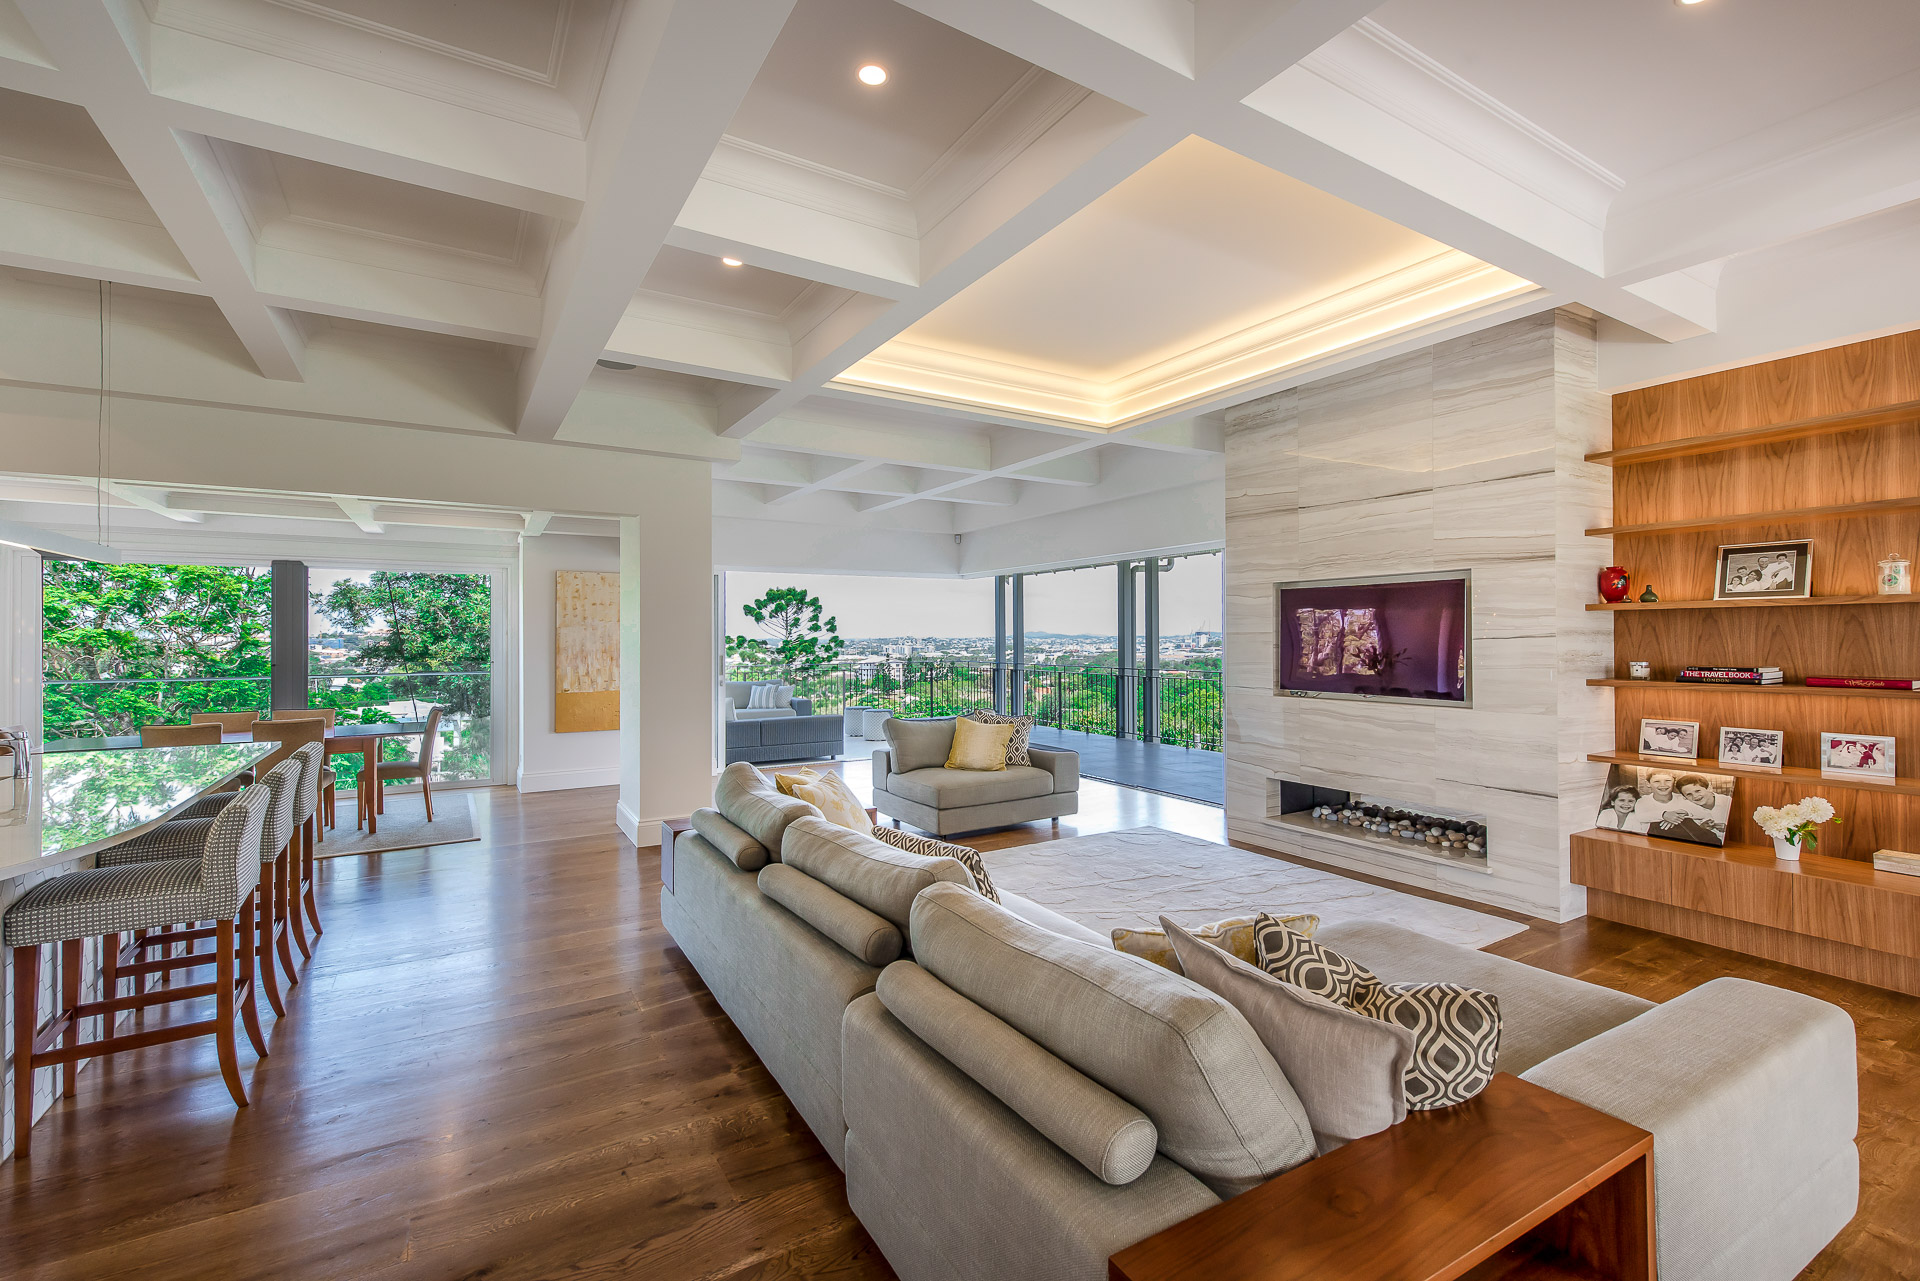 Luxury living room, fireplace, bookshelves, architecture, luxury interiors, minka joinery, Cowan Constructions, brisbane, queensland